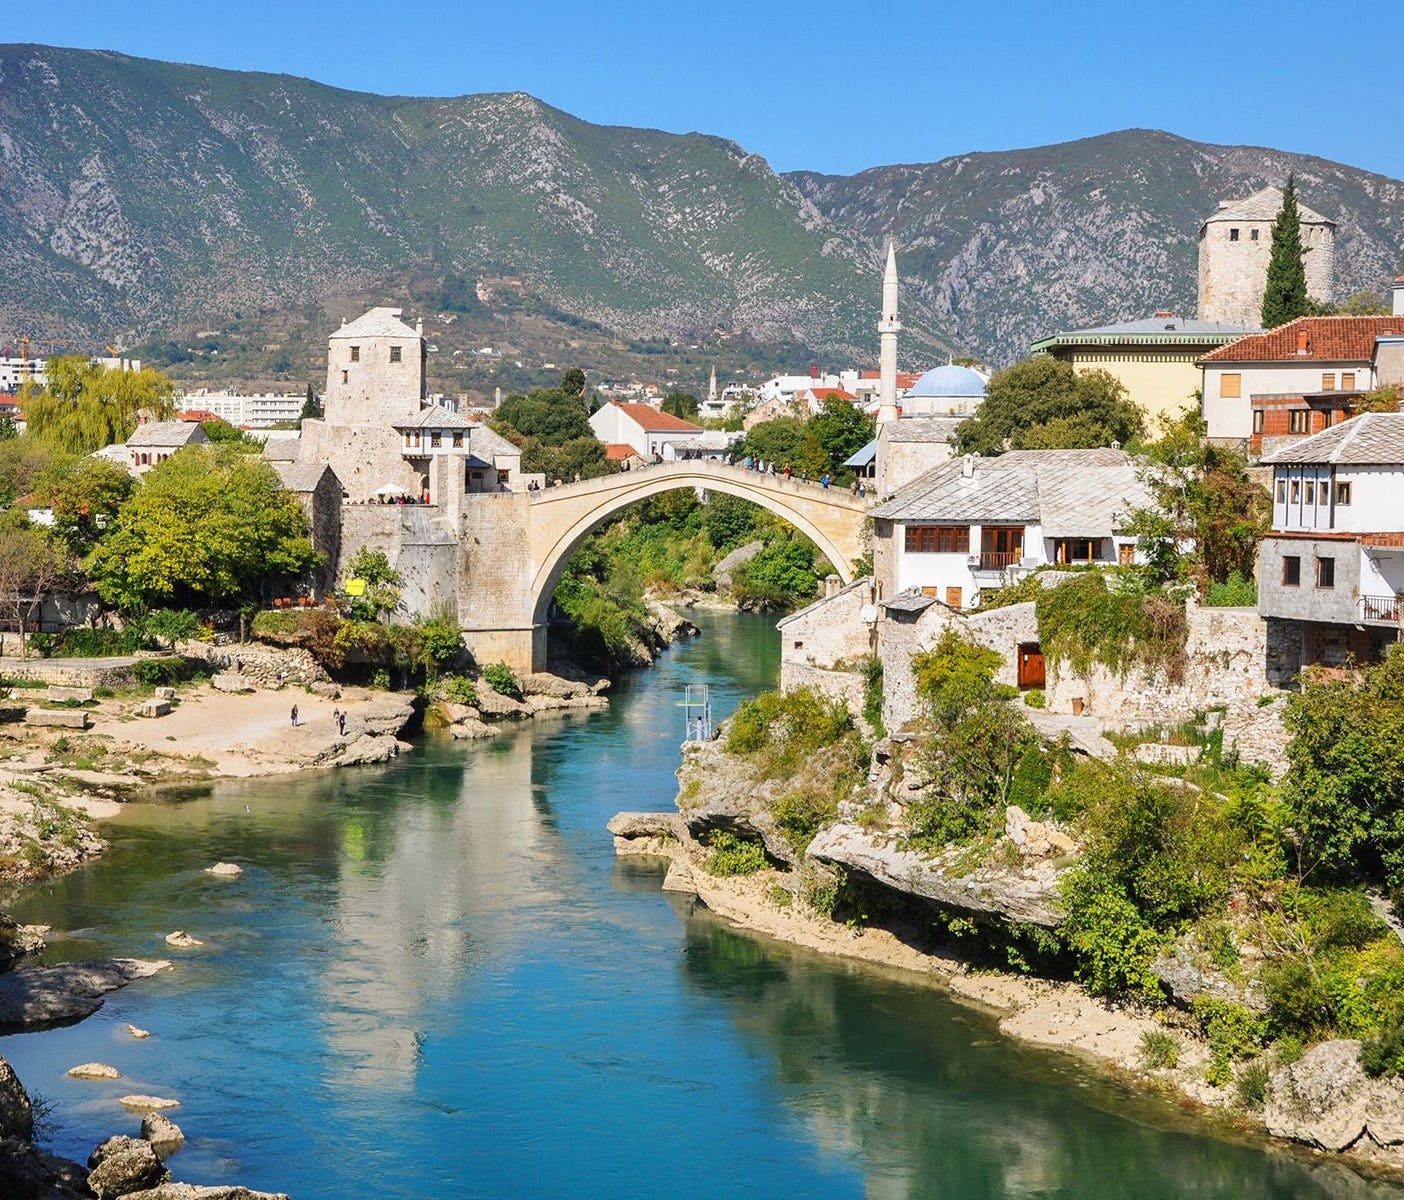 A trip to Mostar, Bosnia-Herzegovina, is one of Europe's richest experiences.